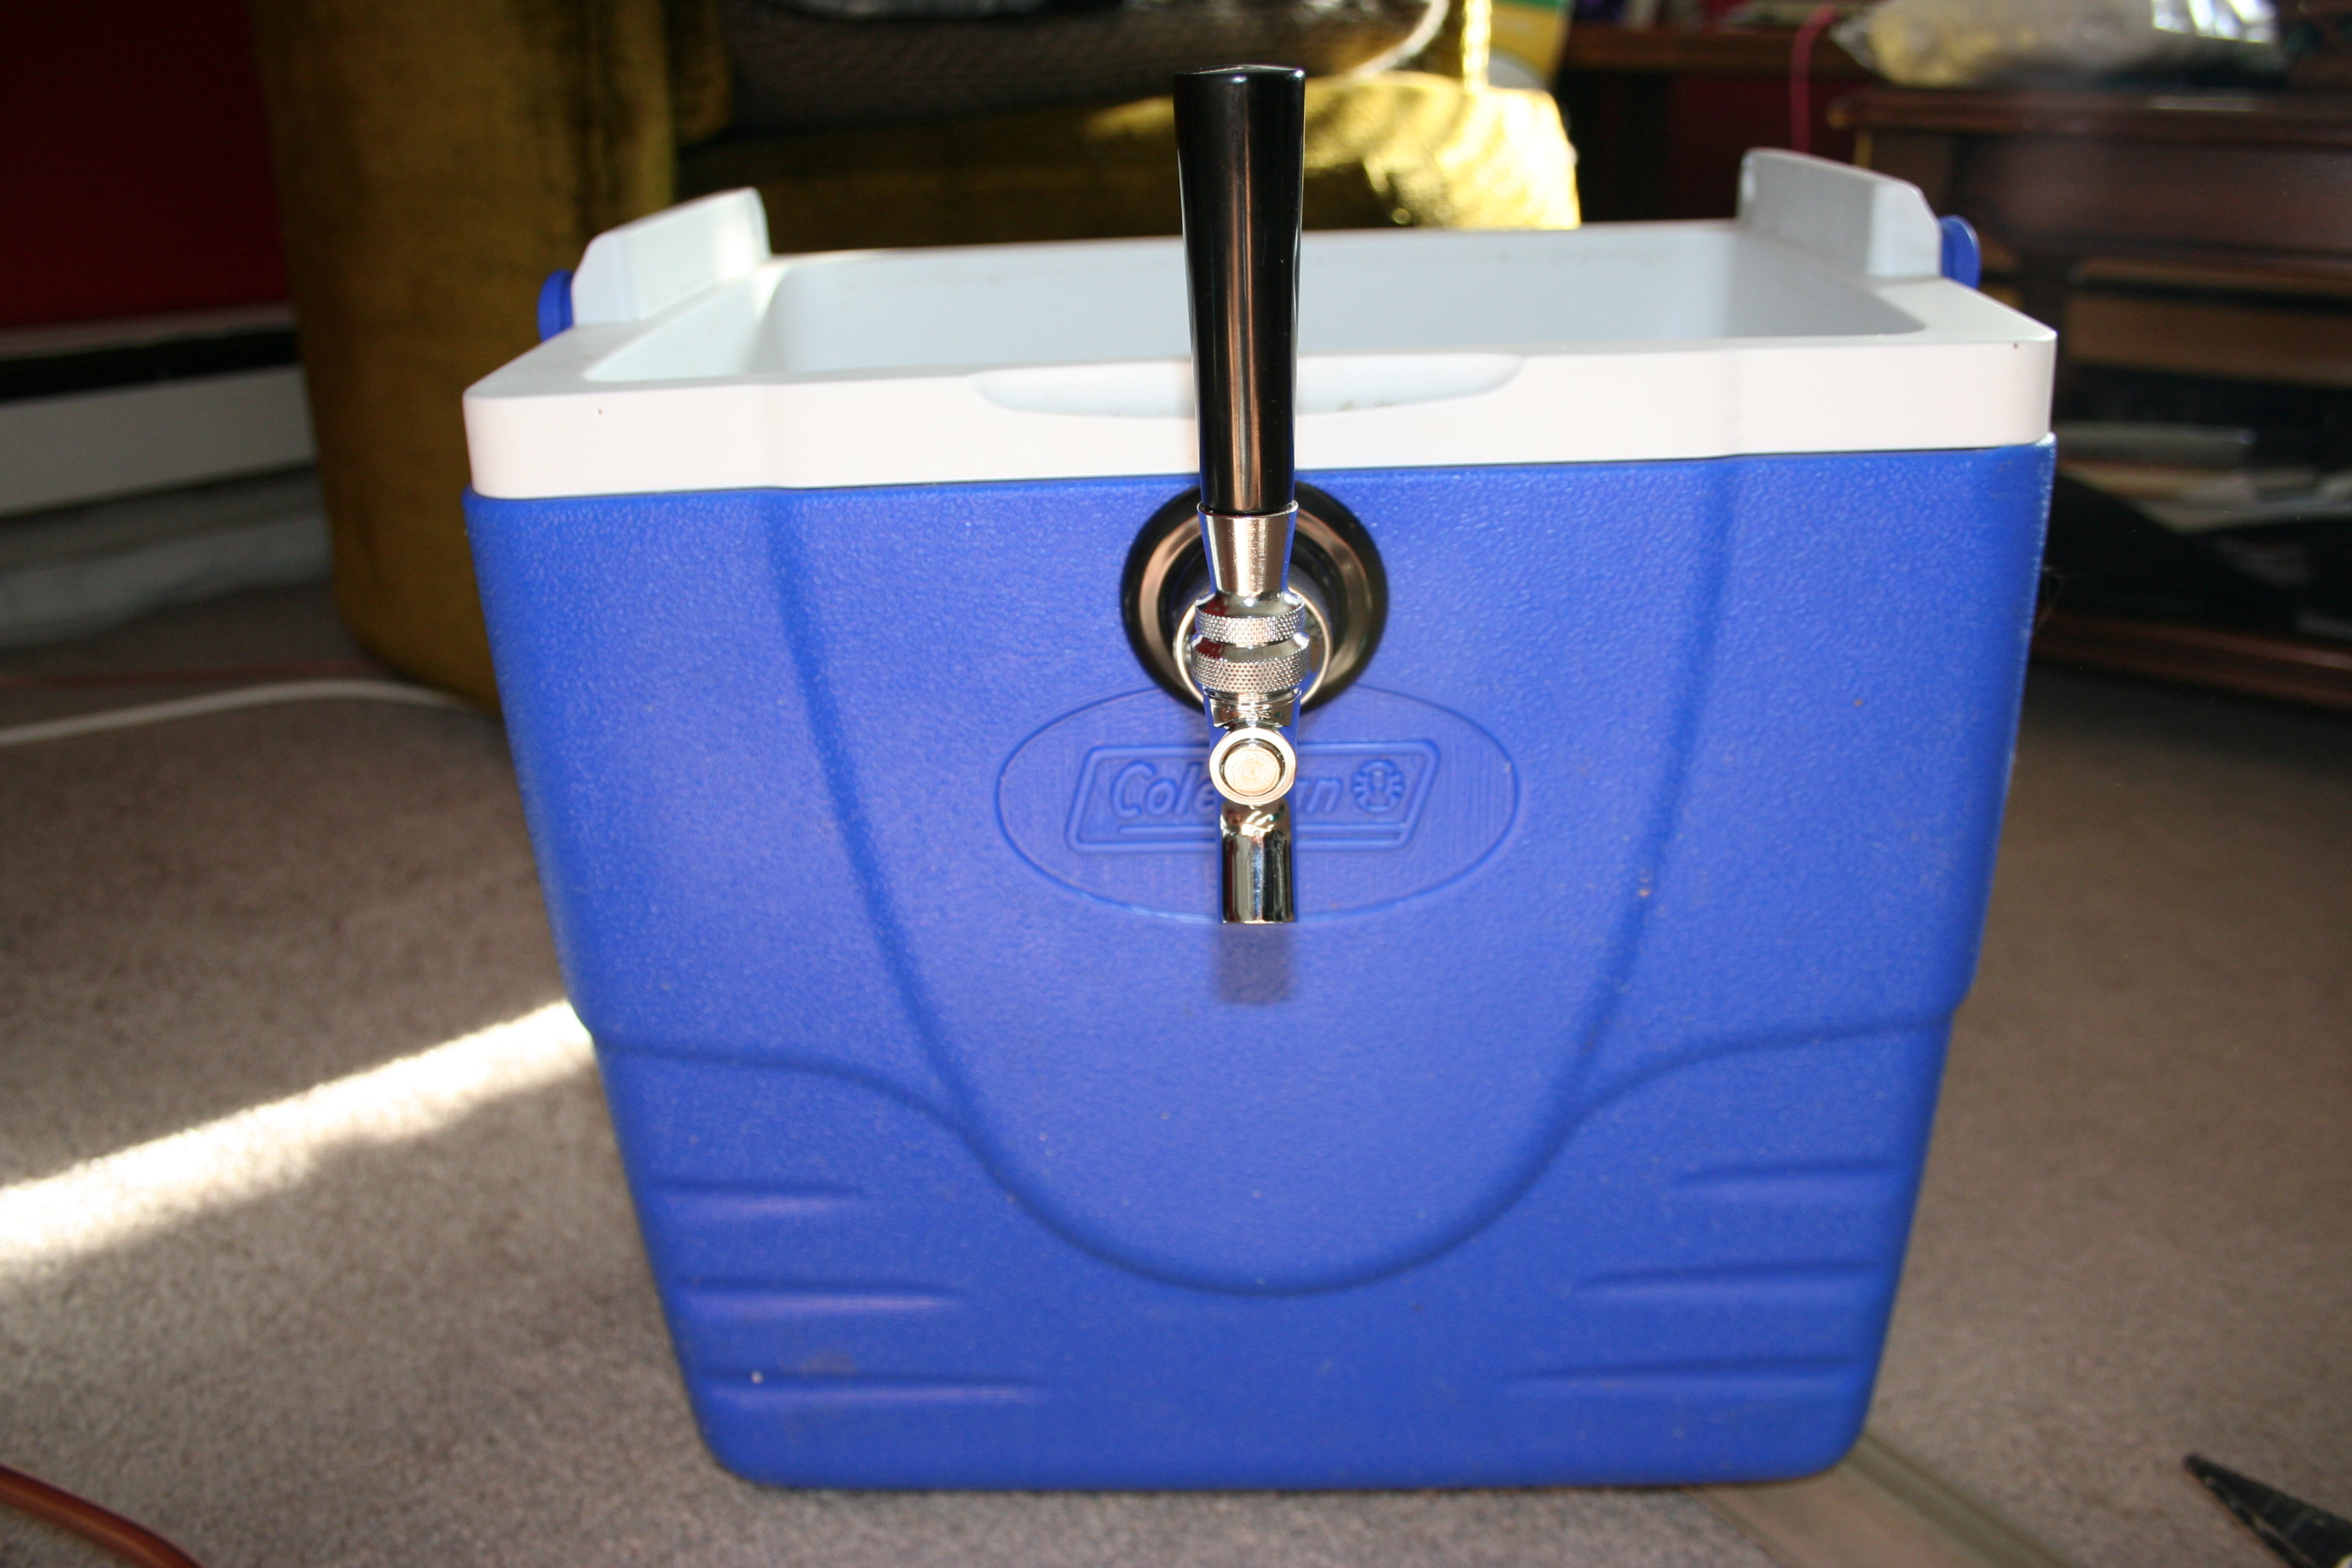 Picture of Drill Out the Cooler for the Tap.